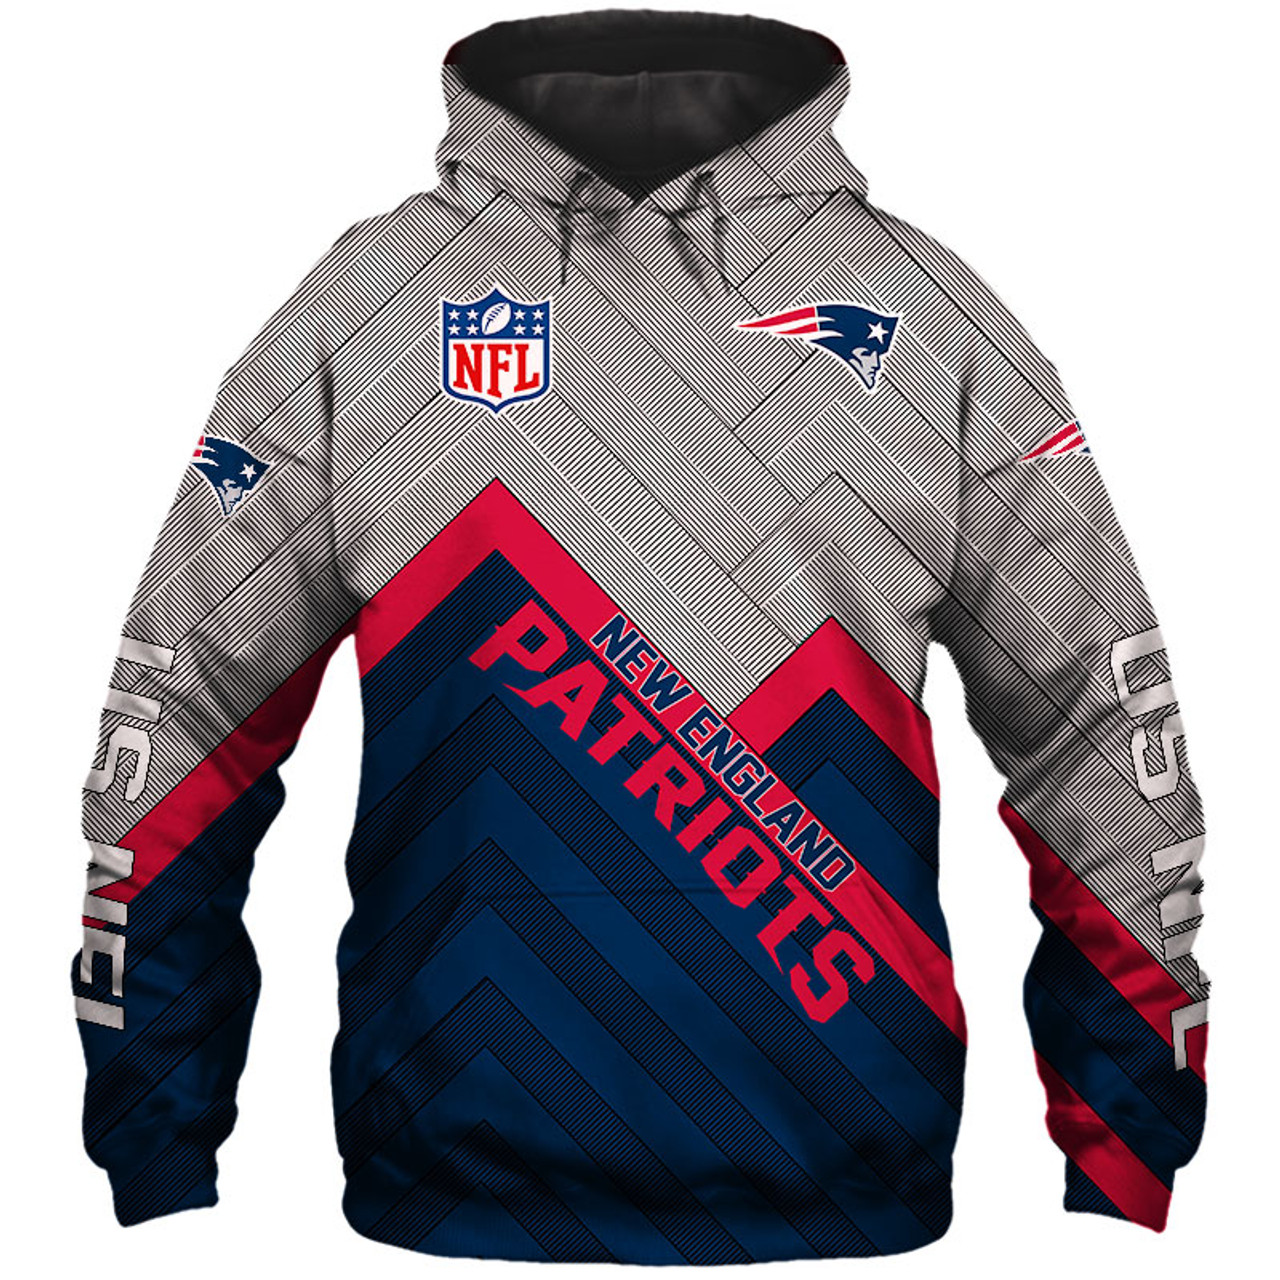 new concept 36c77 d3fce **(OFFICIAL-NEW-N.F.L.NEW-ENGLAND-PATRIOTS-PULLOVER-HOODIES/3D-CUSTOM-PATRIOTS-LOGOS  & OFFICIAL-PATRIOTS-TEAM-COLORS/NICE-3D-DETAILED-GRAPHIC-PRINTED-...